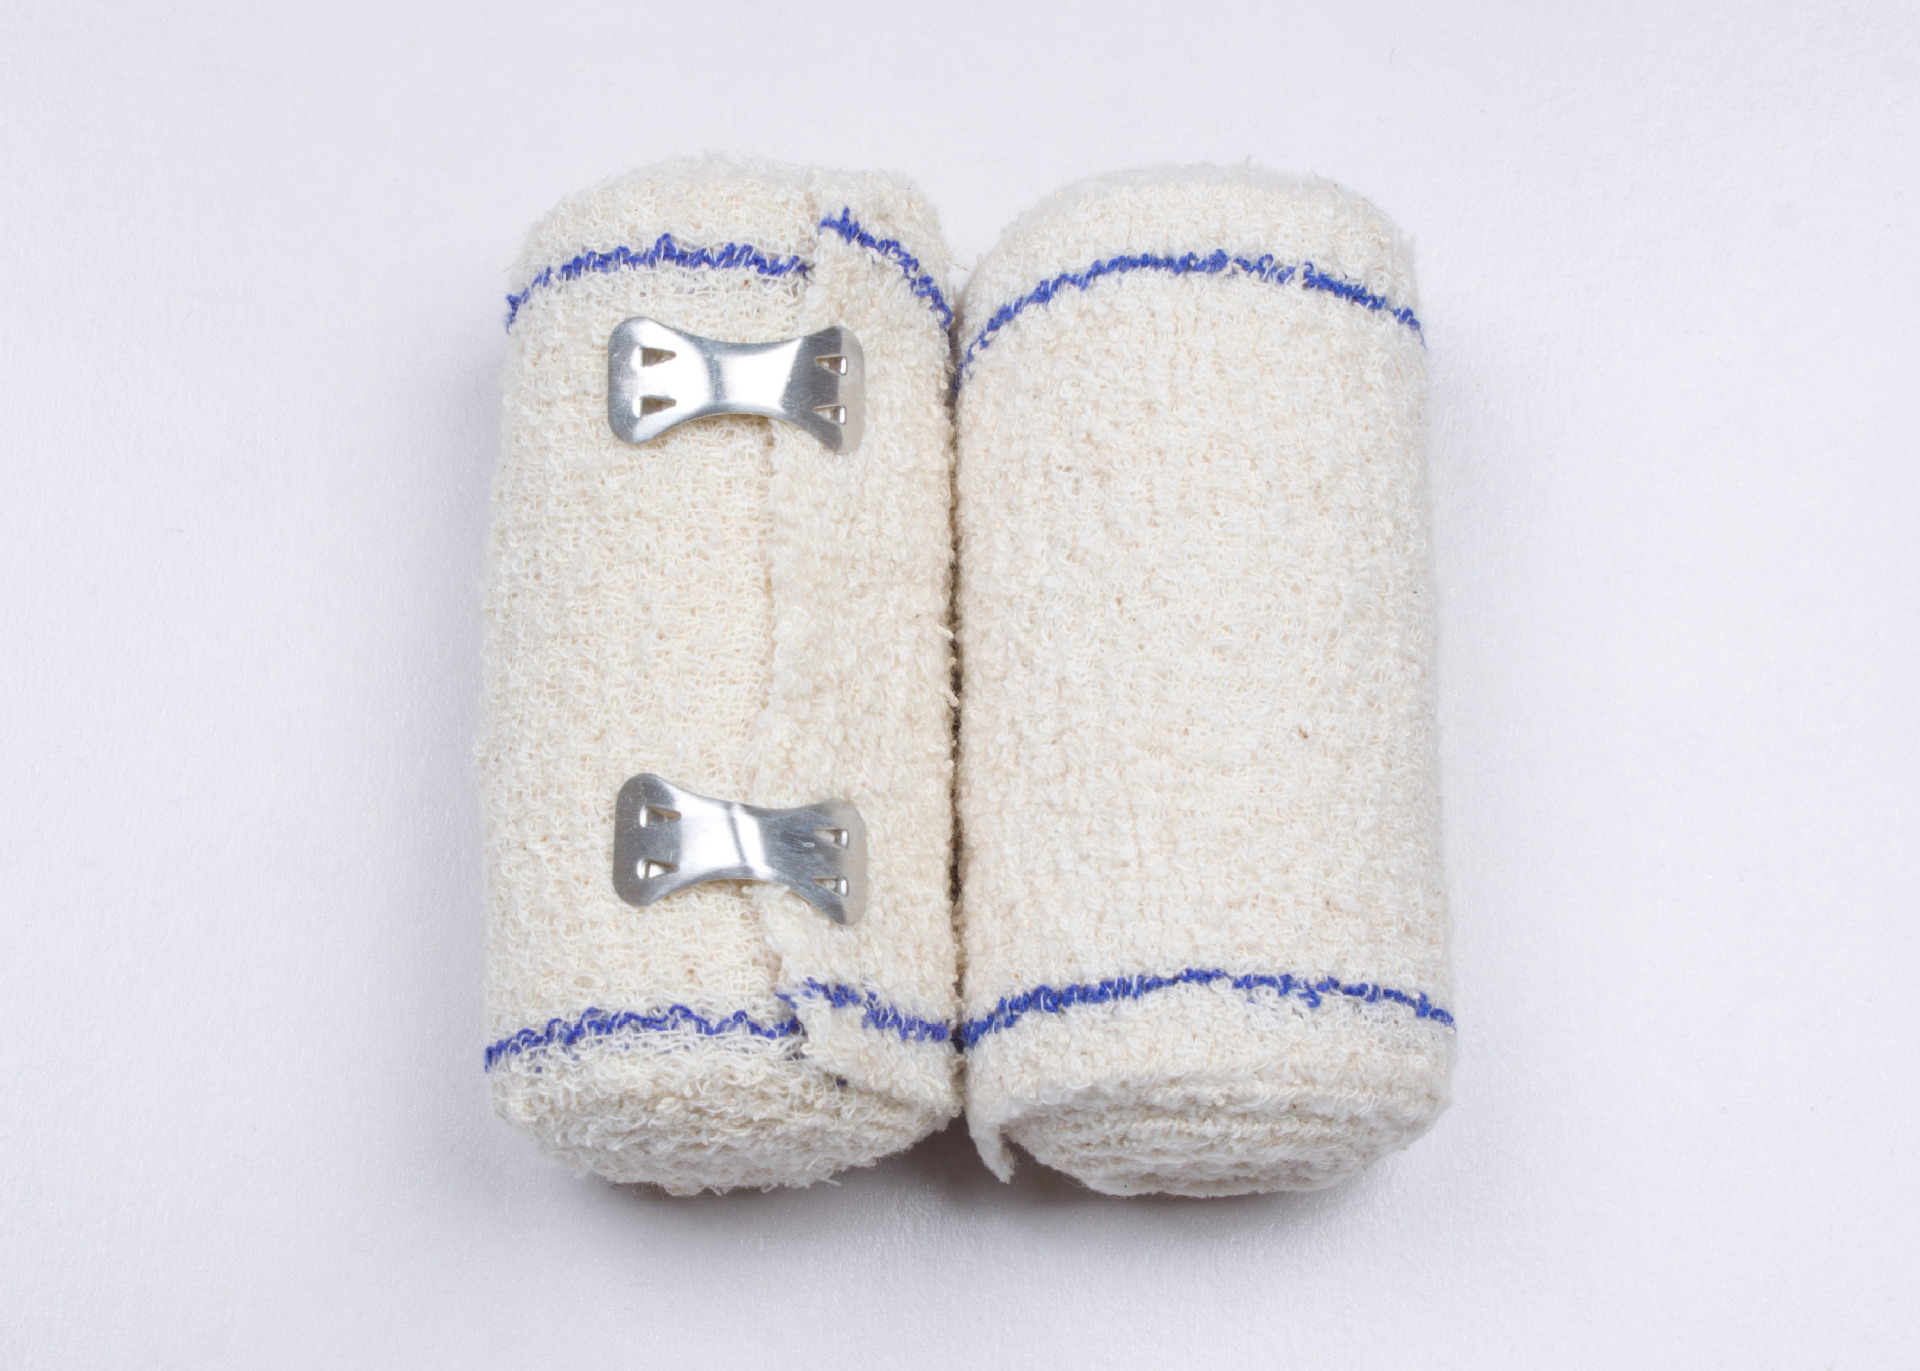 7 5cm x 4 5m Inventory Of first aid Medical elastic Bandage